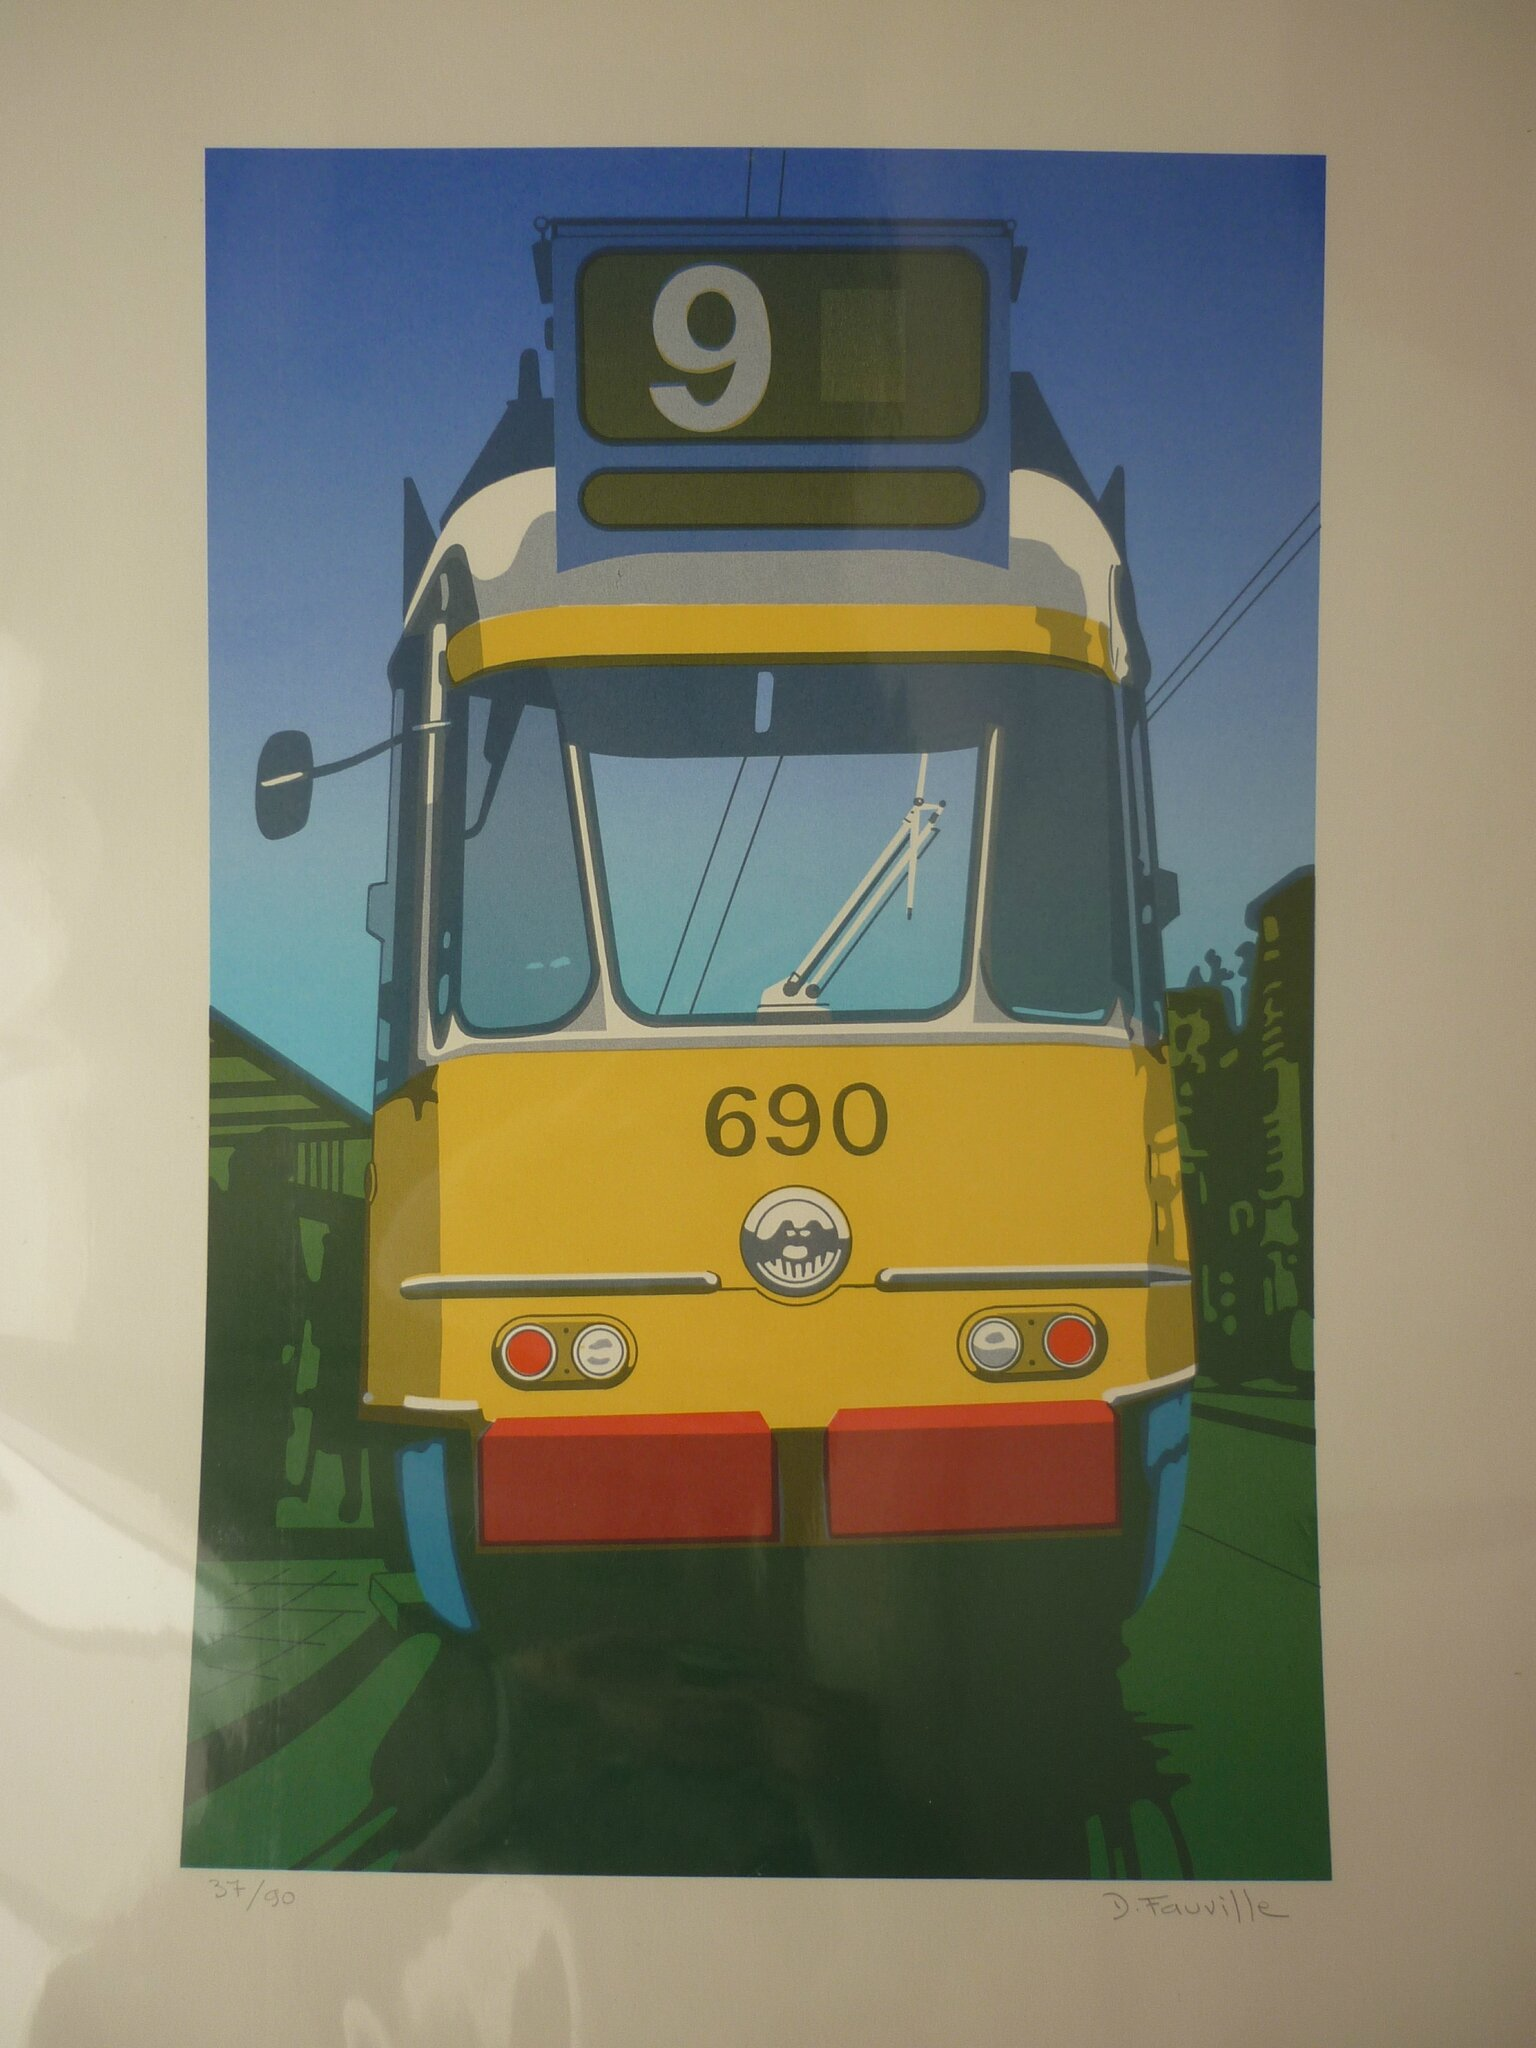 FAUVILLE TRAM 3